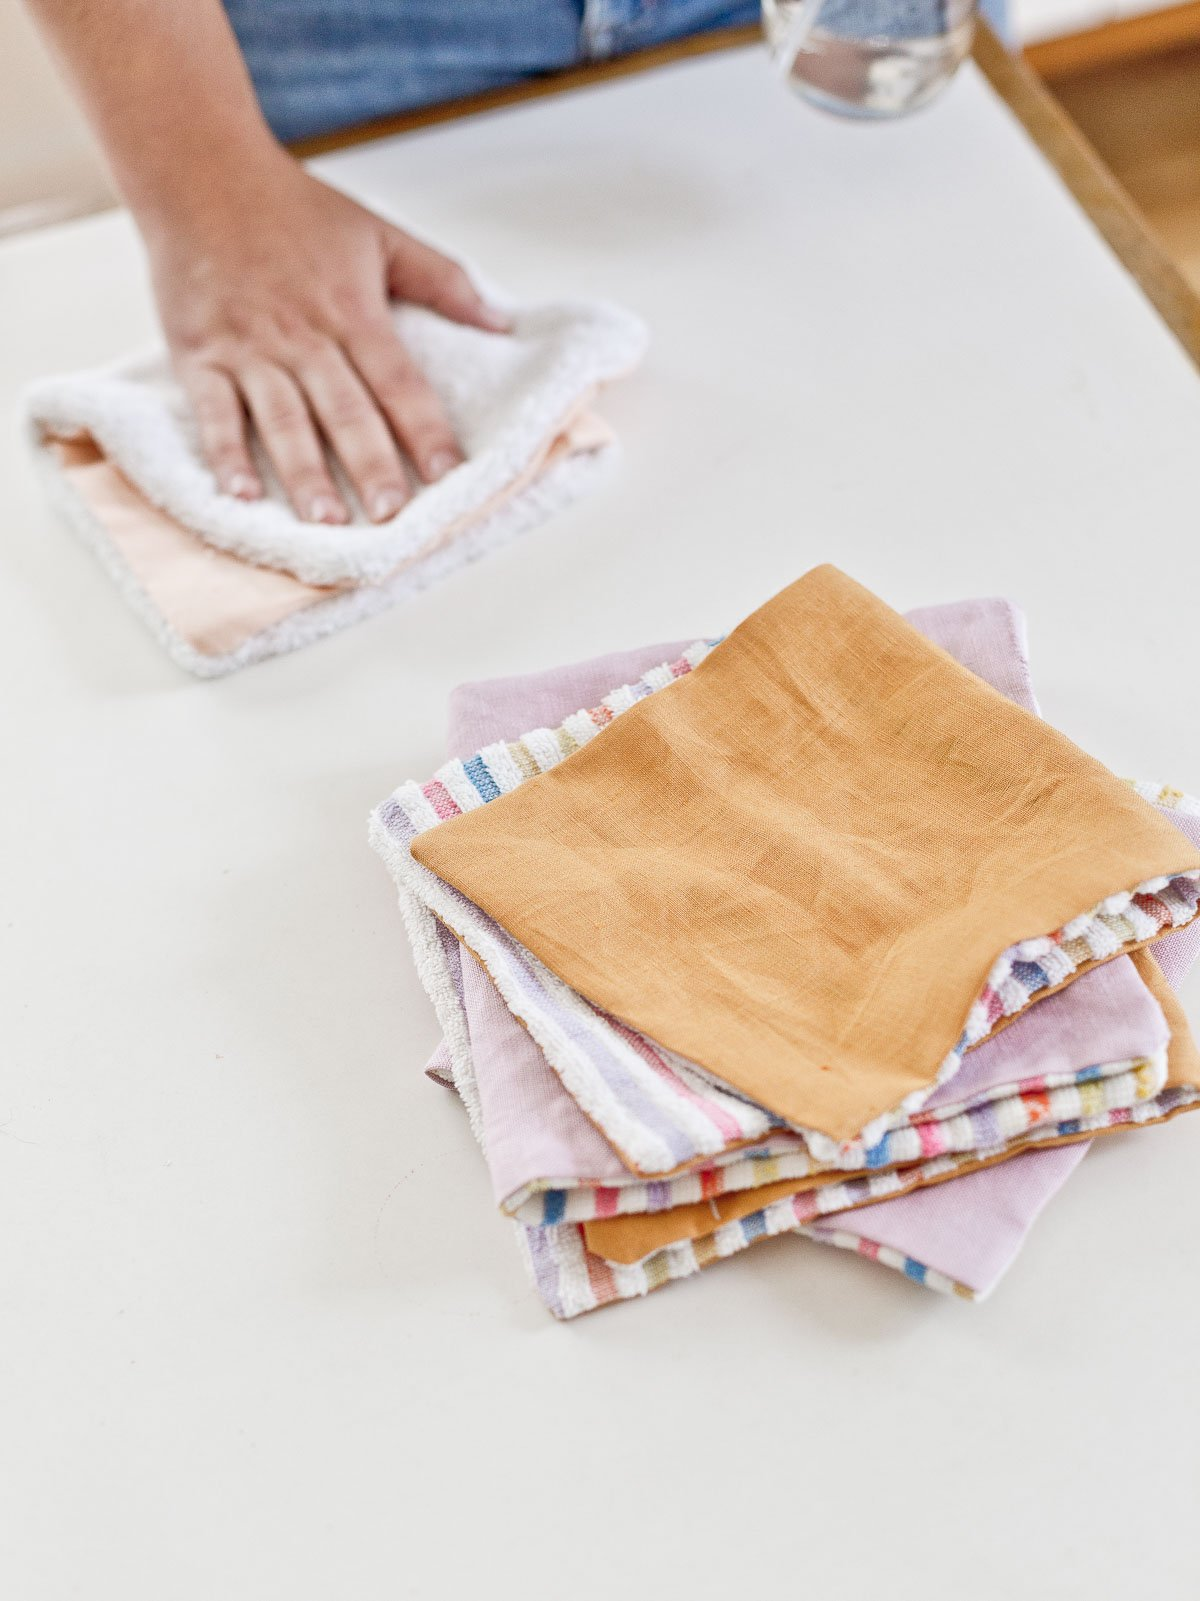 Cleaning up spills with simple DIY unpaper towels made of colorful fabric scraps.